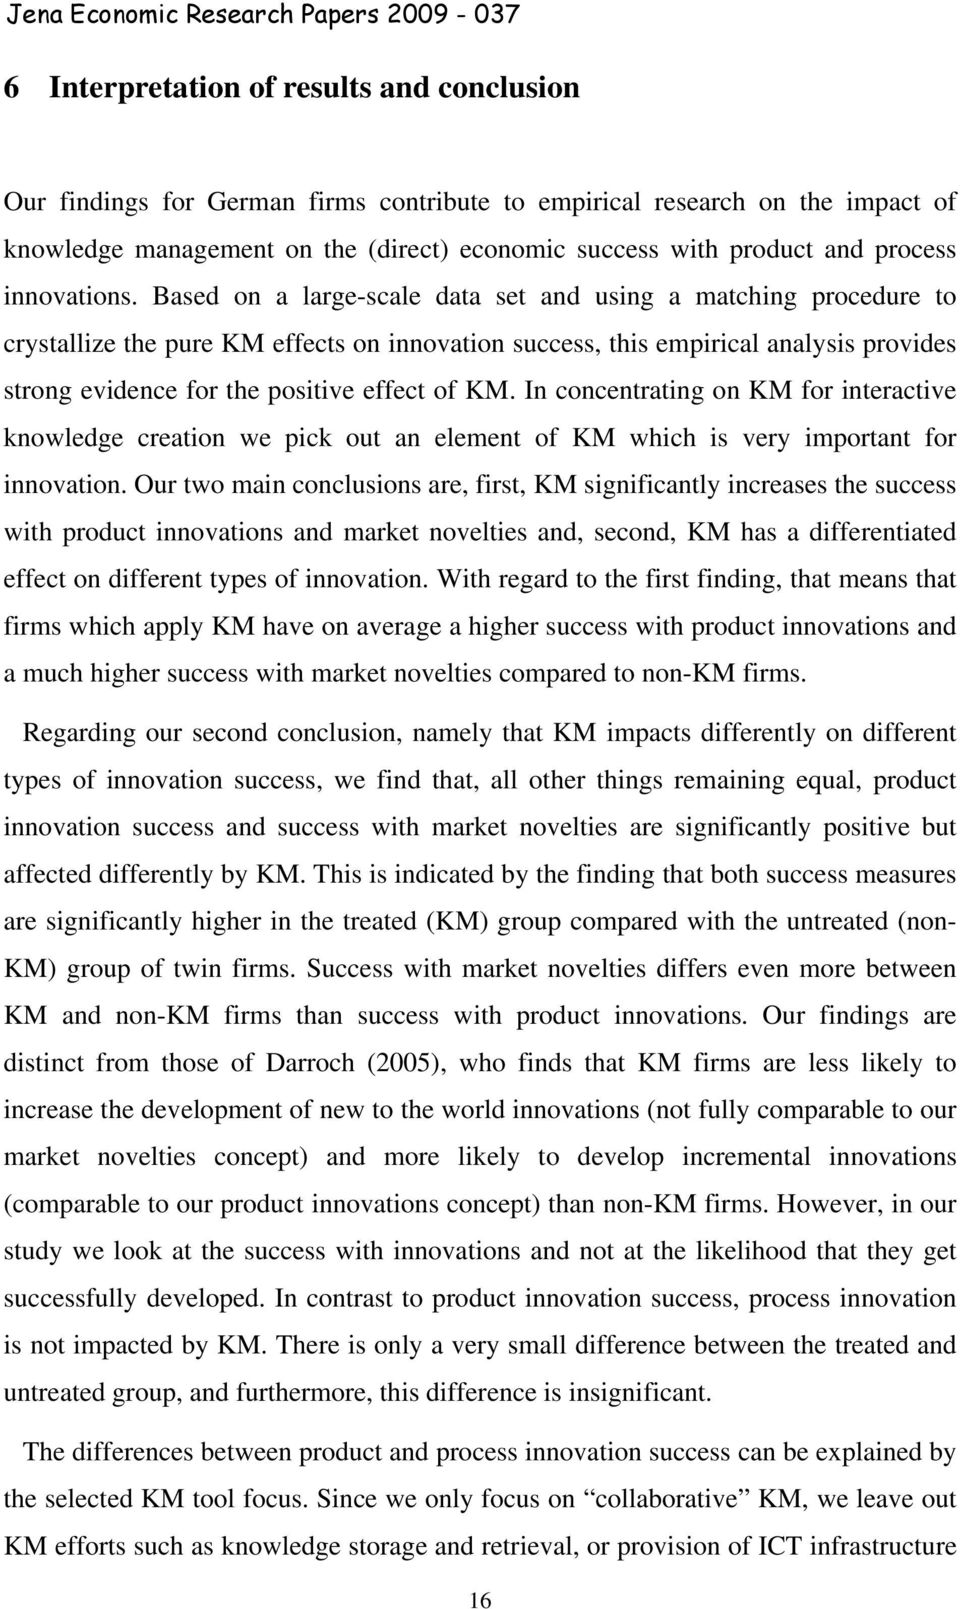 Based on a large-scale data set and using a matching procedure to crystallize the pure KM effects on innovation success, this empirical analysis provides strong evidence for the positive effect of KM.